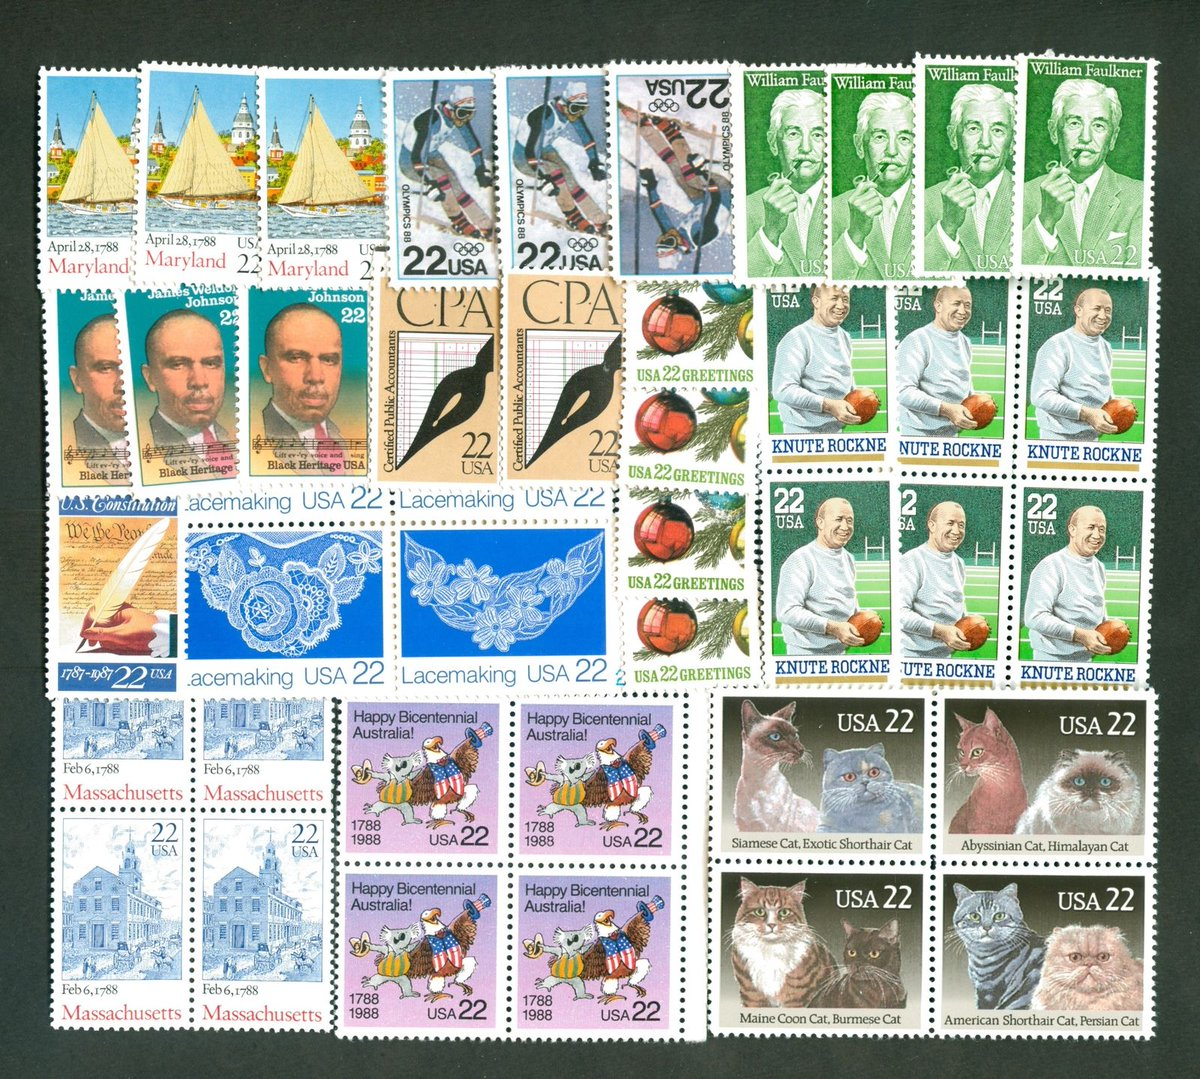 Them All Storesebay Thestampandcoinplace Stamps I Fsub678906016 Stampcollecting Philately Stampcollection Collector Collect